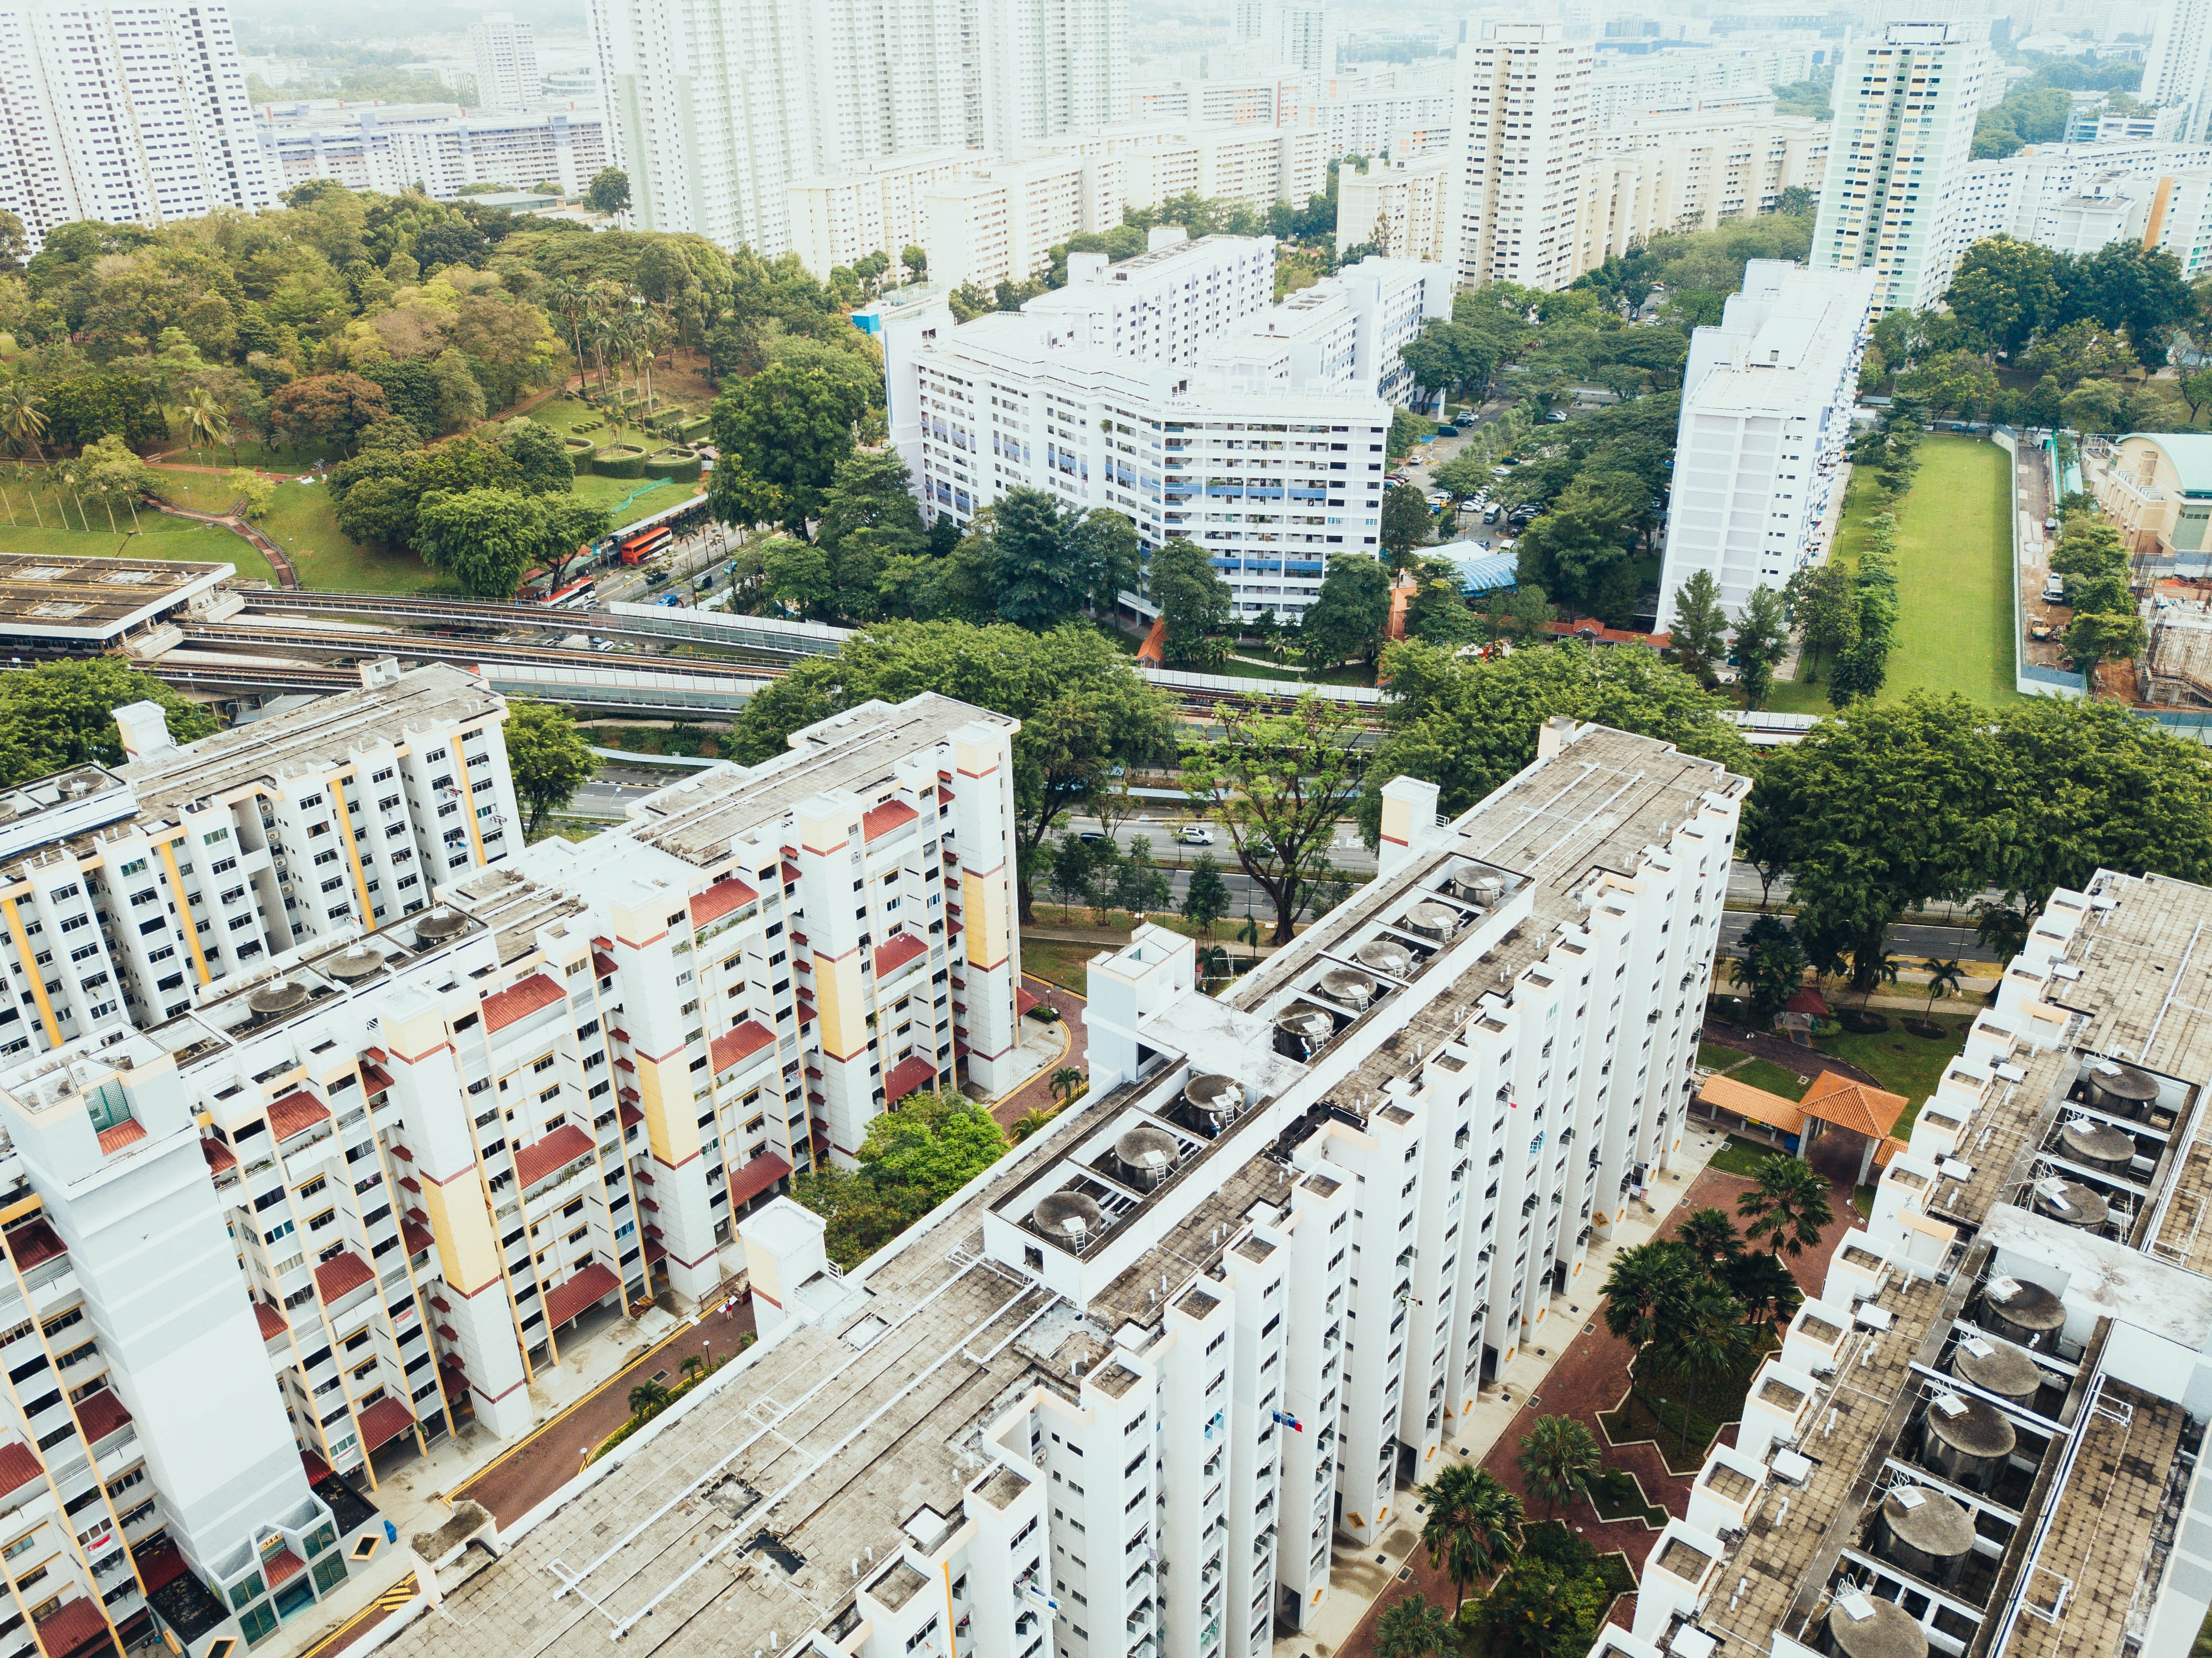 aerial view photography of white buildings